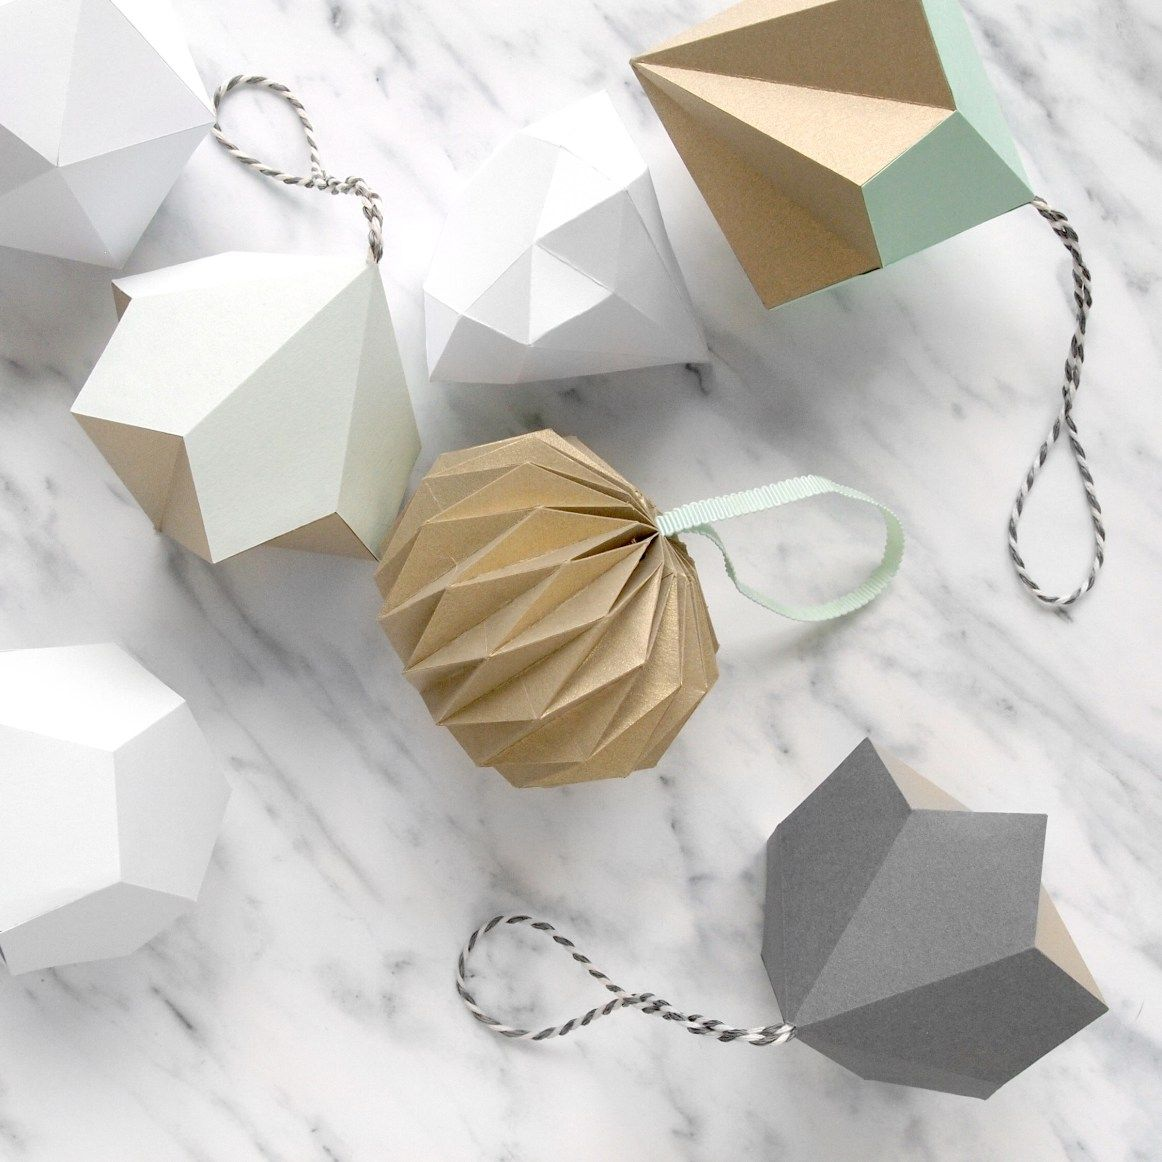 3d geometric paper shape decorations | d i y and paper origami